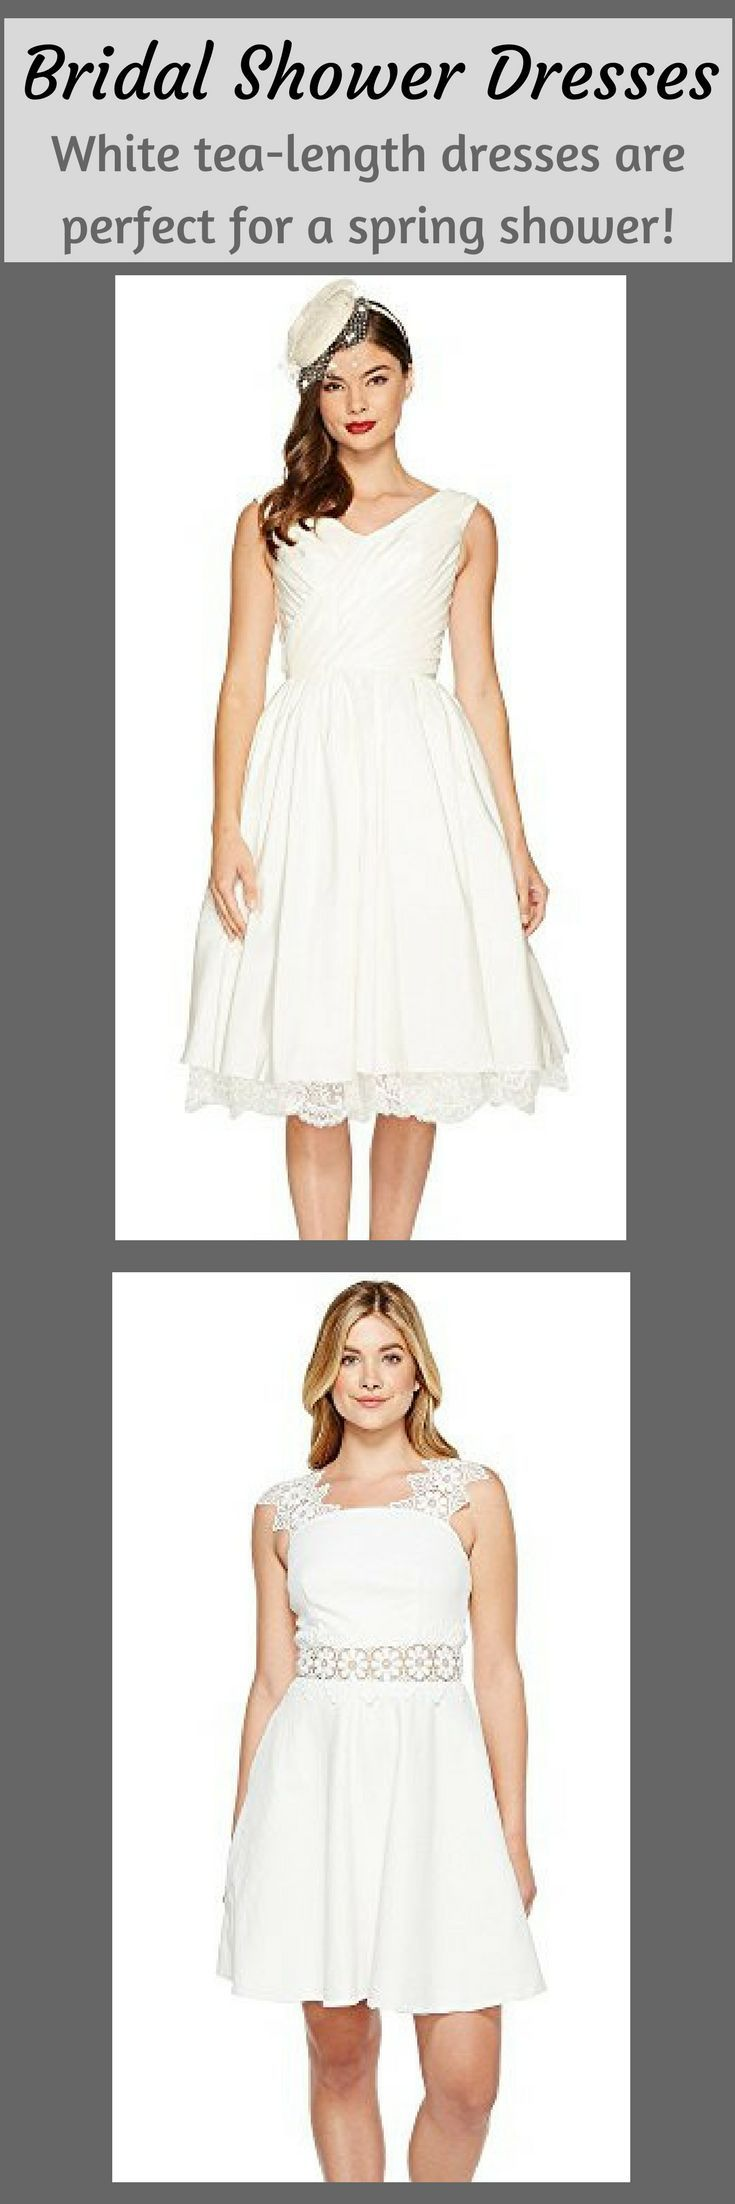 dont know what to wear to your bridal shower white of course